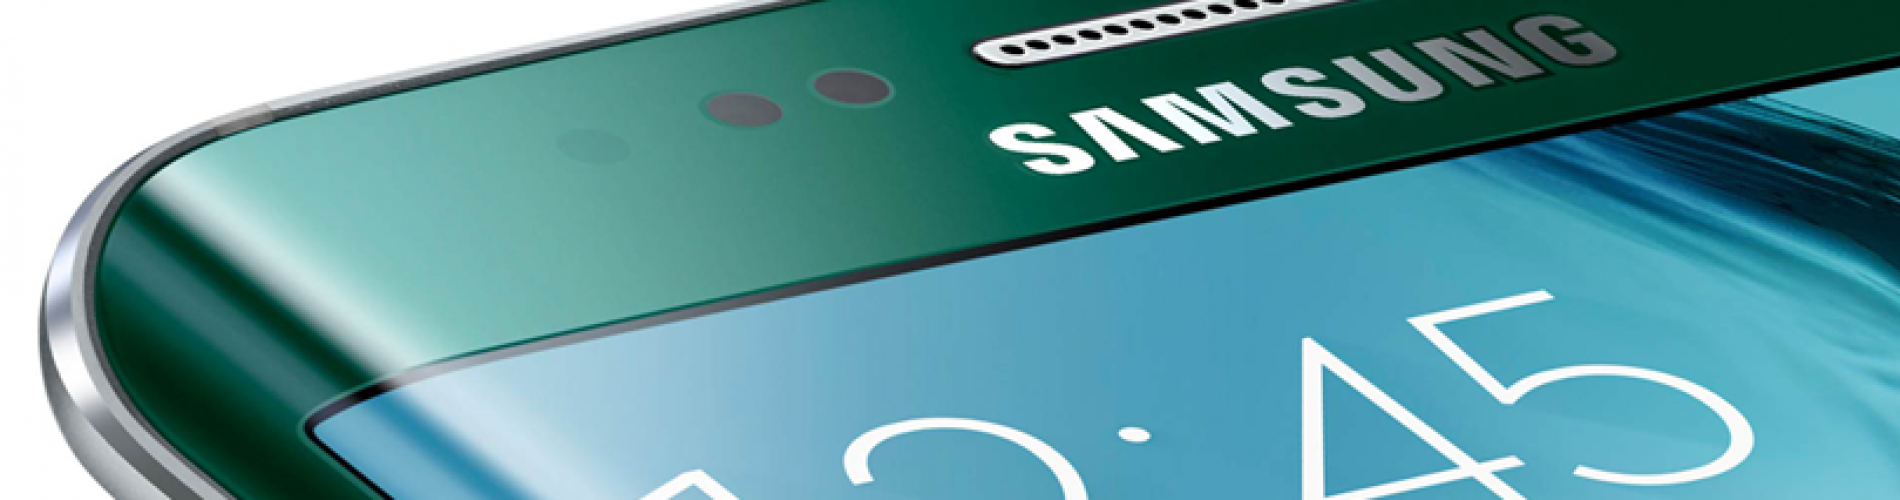 Samsung looks to drop price of Galaxy S6 and S6 Edge